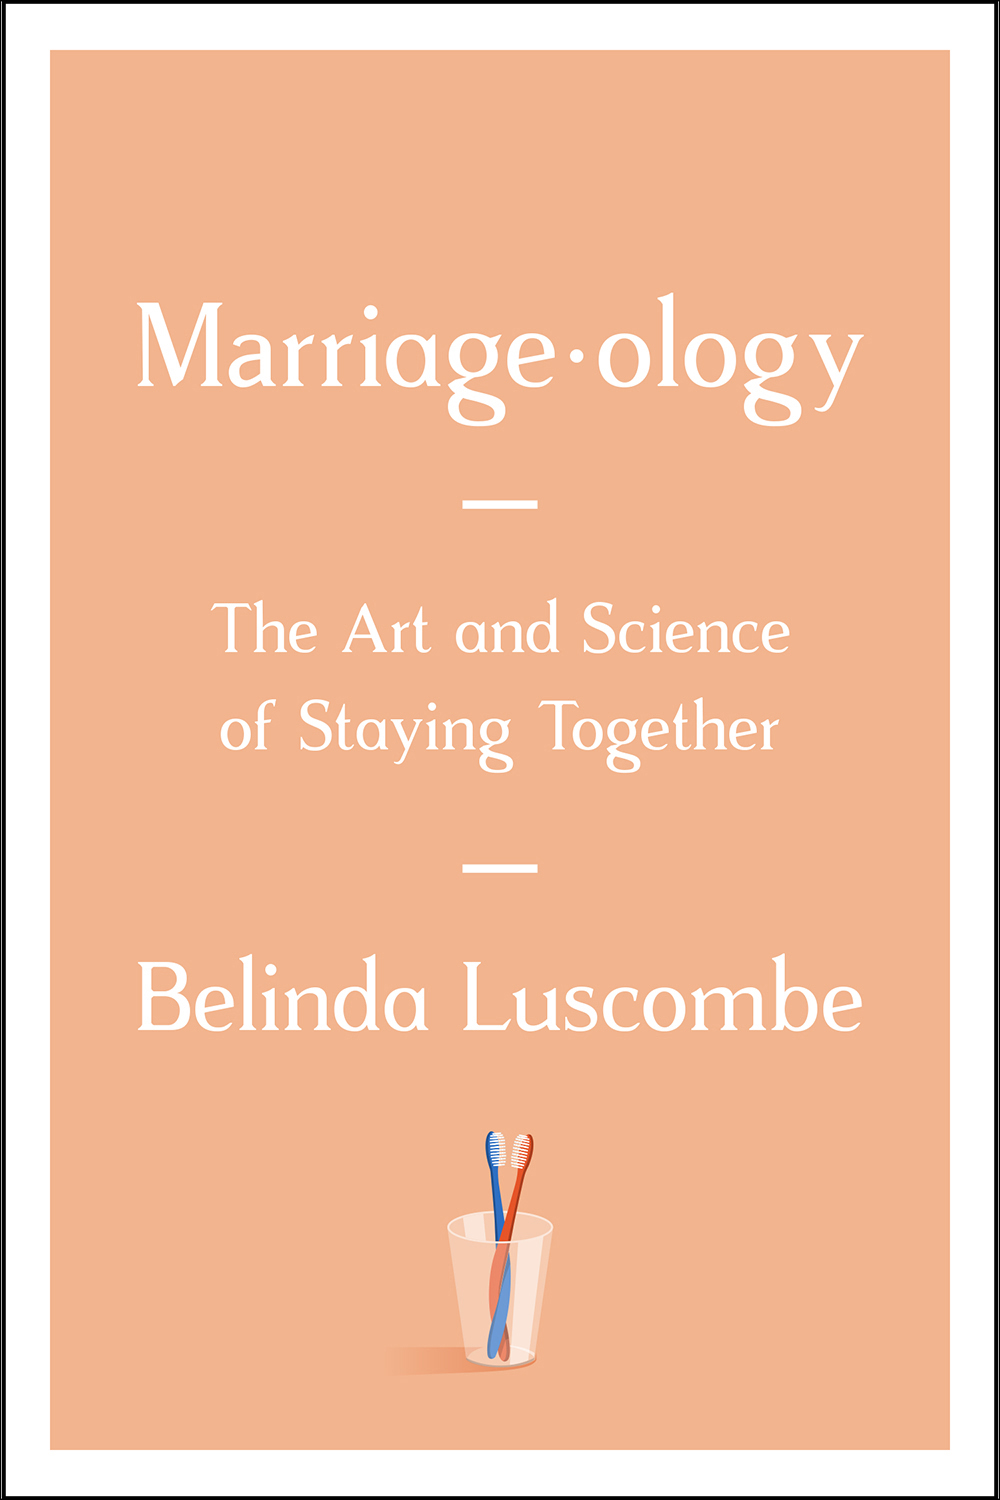 Marriageology Belinda Luscombe